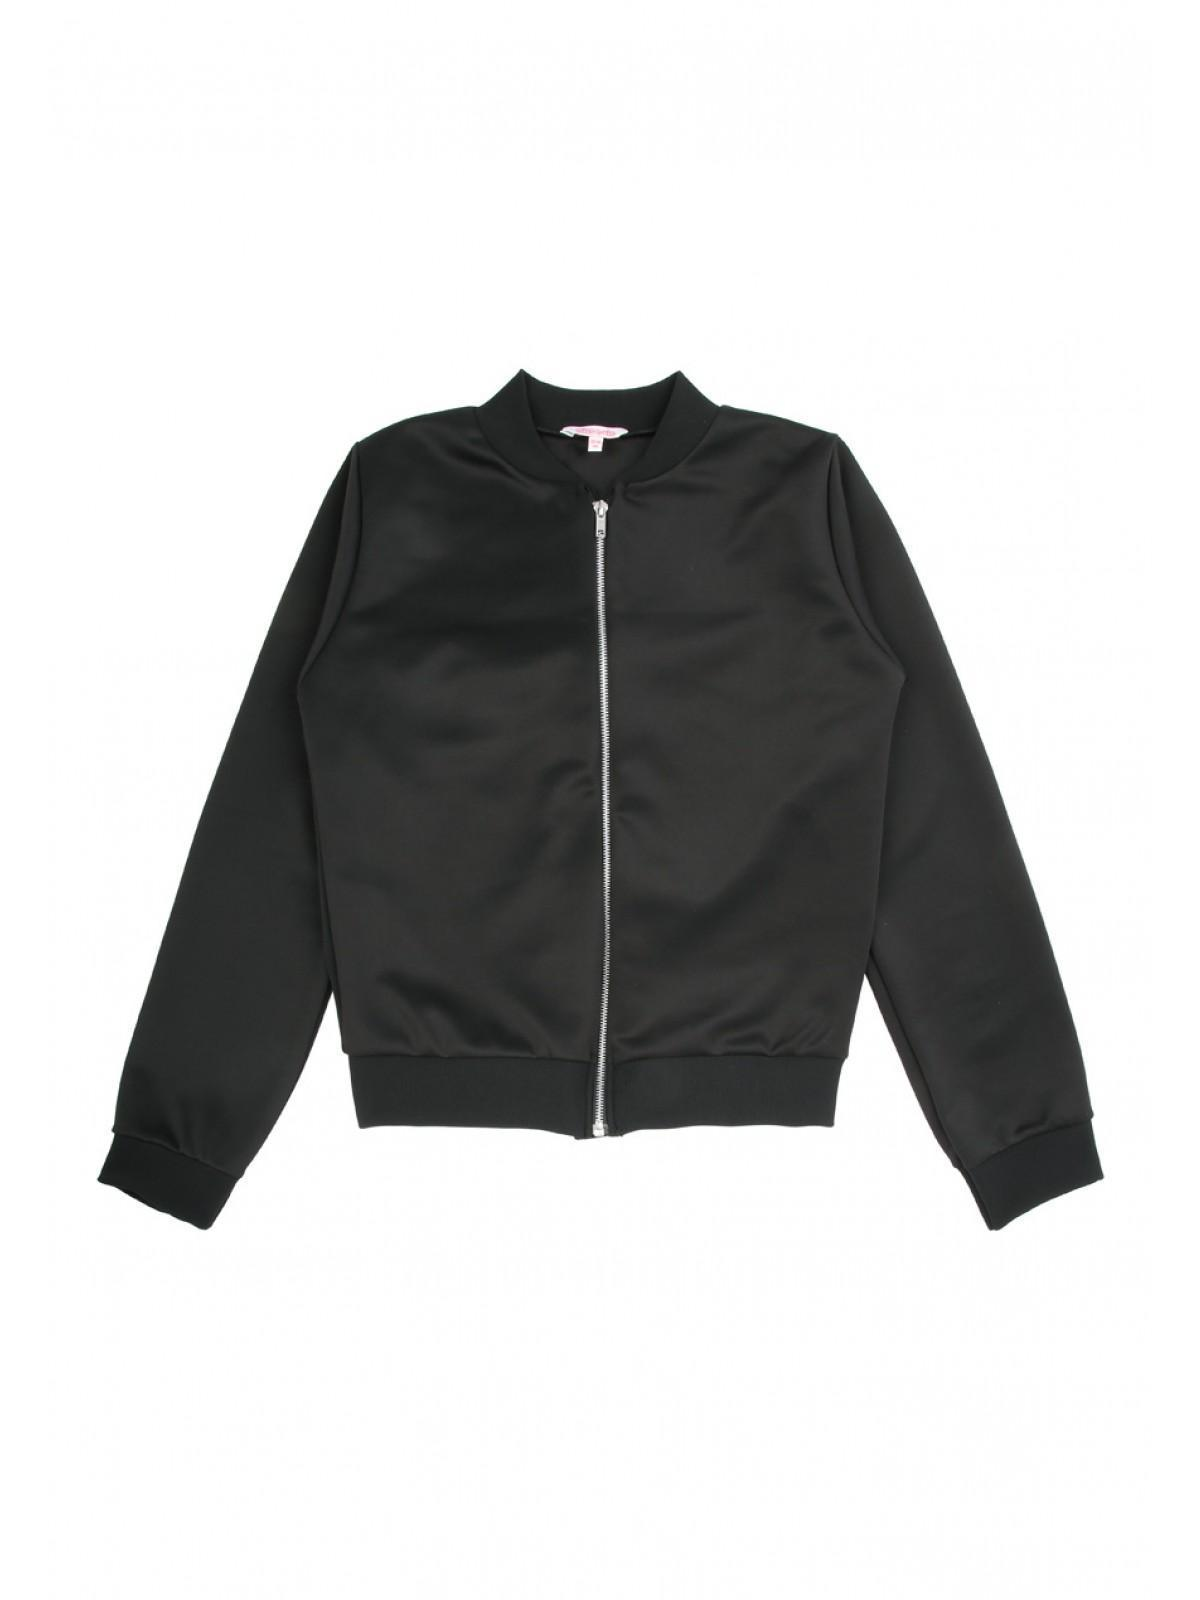 Girls Black Bomber Jacket | Outdoor Jacket